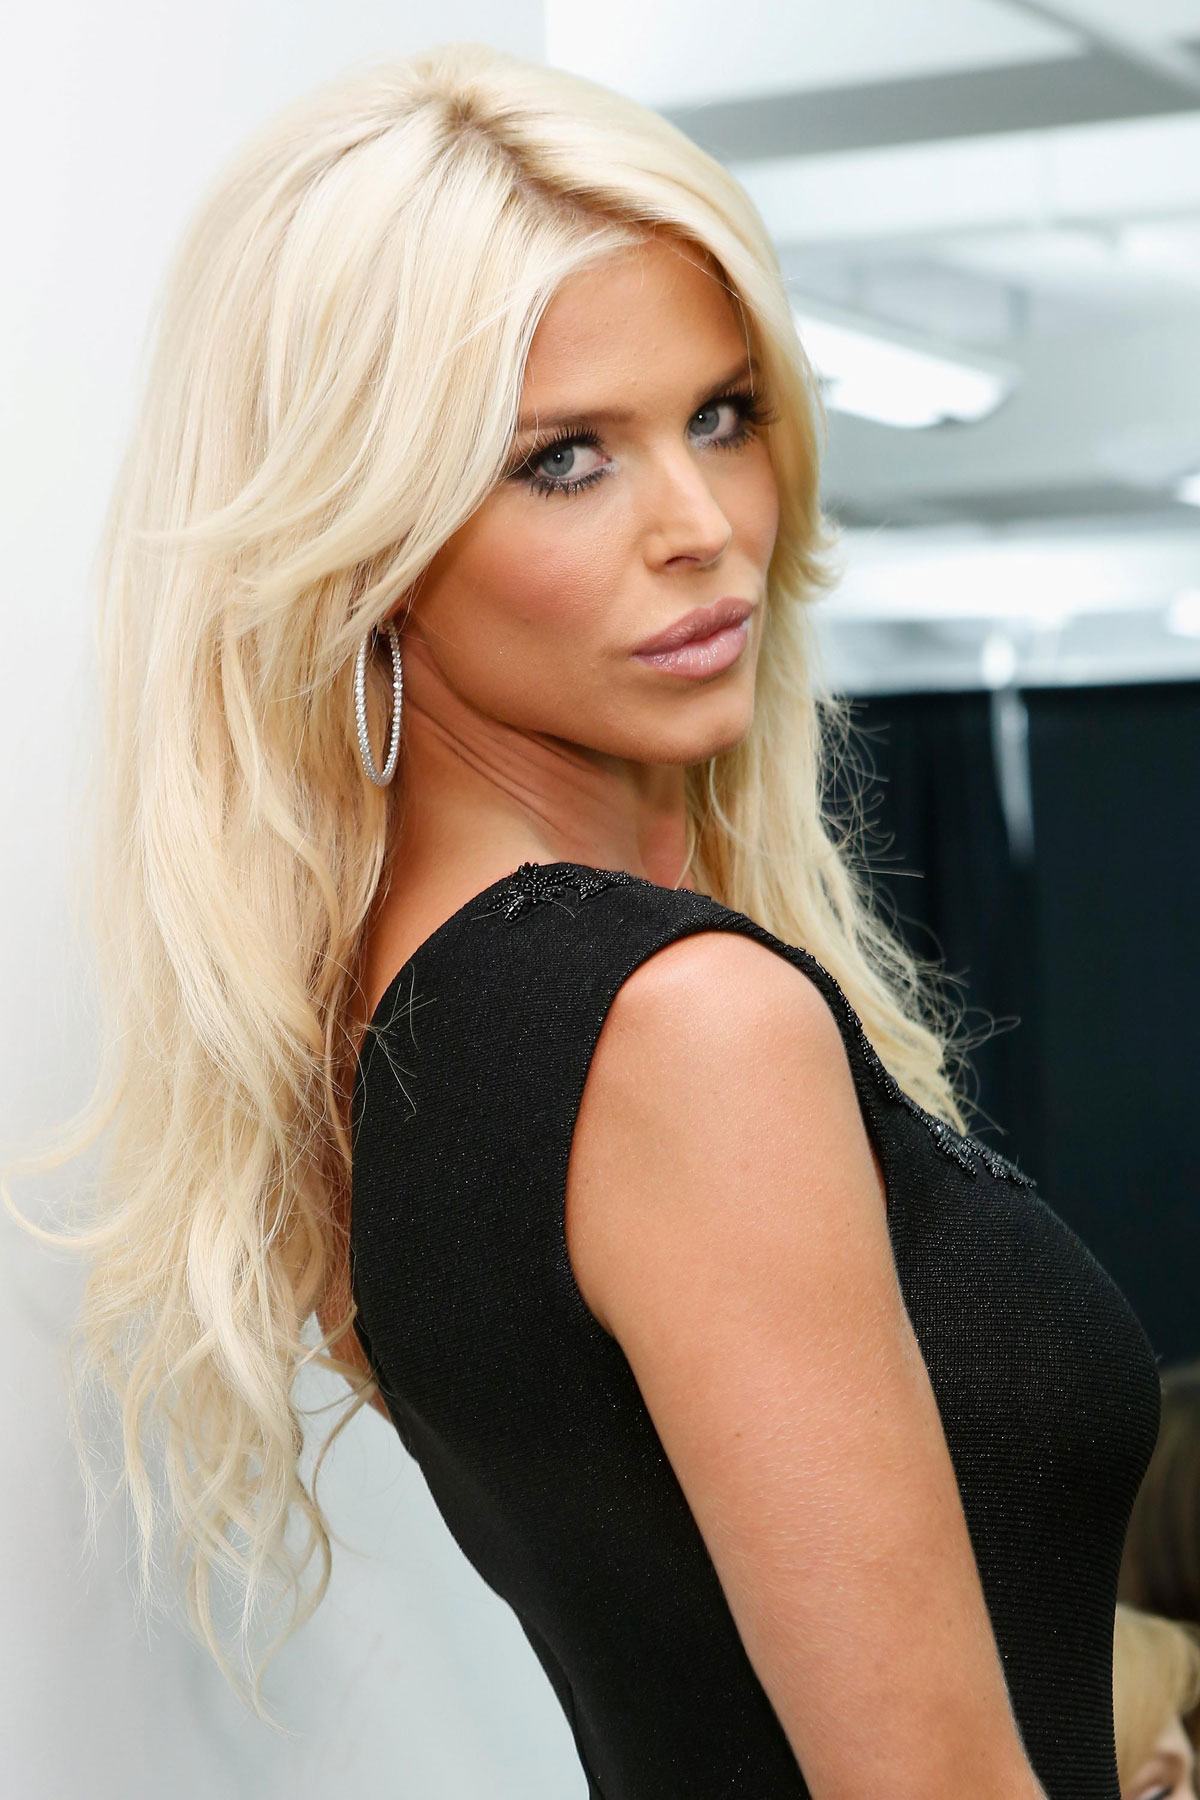 Victoria Silvstedt nudes (94 photos), video Selfie, Instagram, underwear 2015